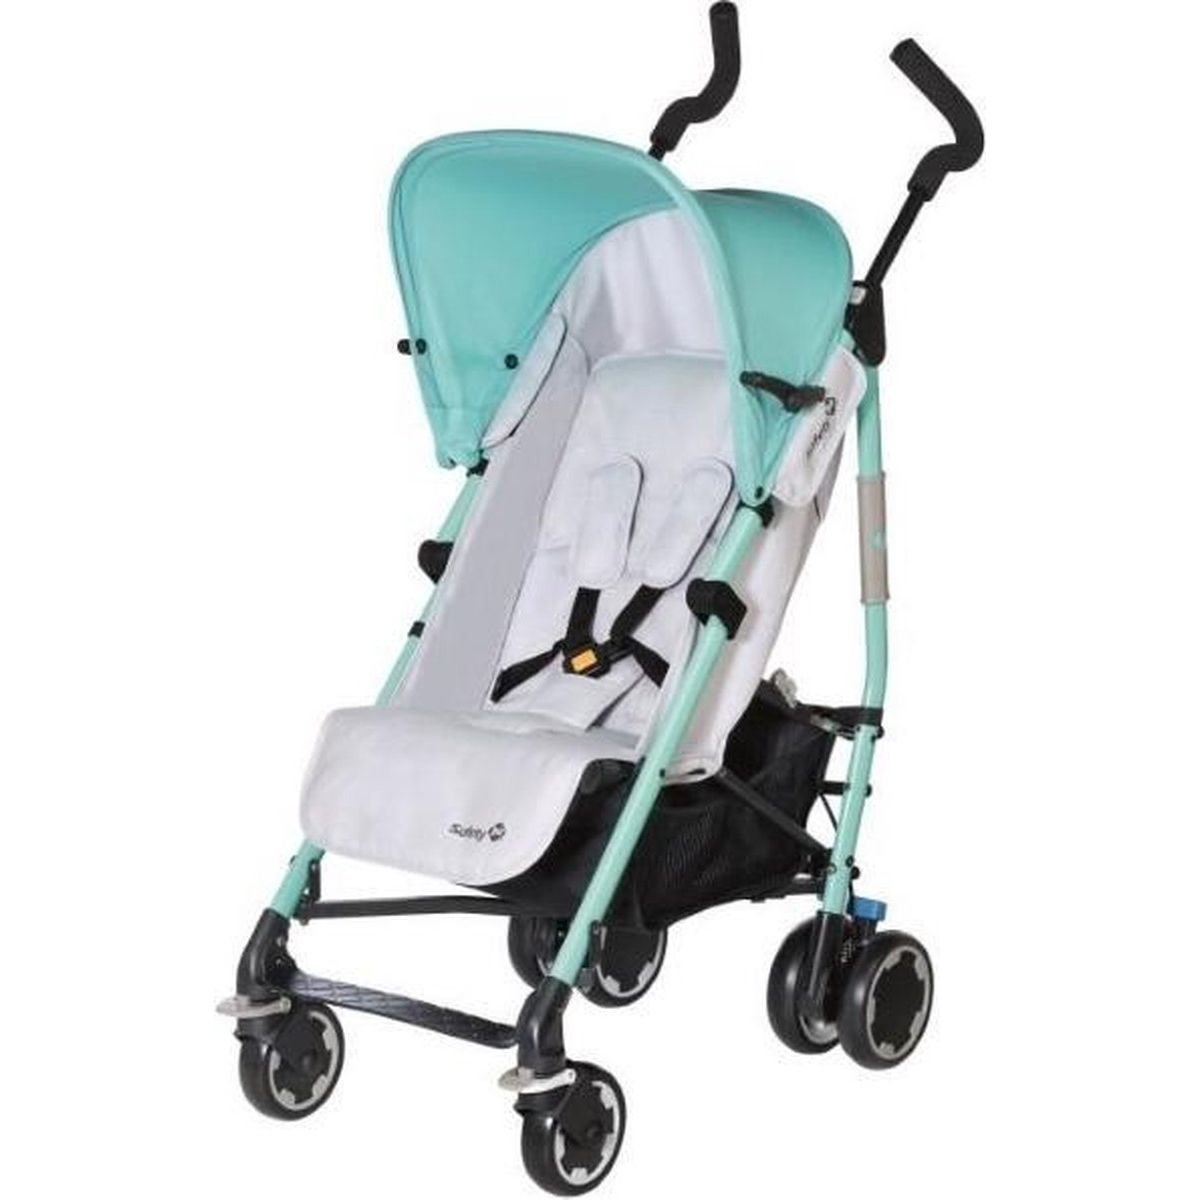 Carucior Safety 1st Compa City Pop, Green